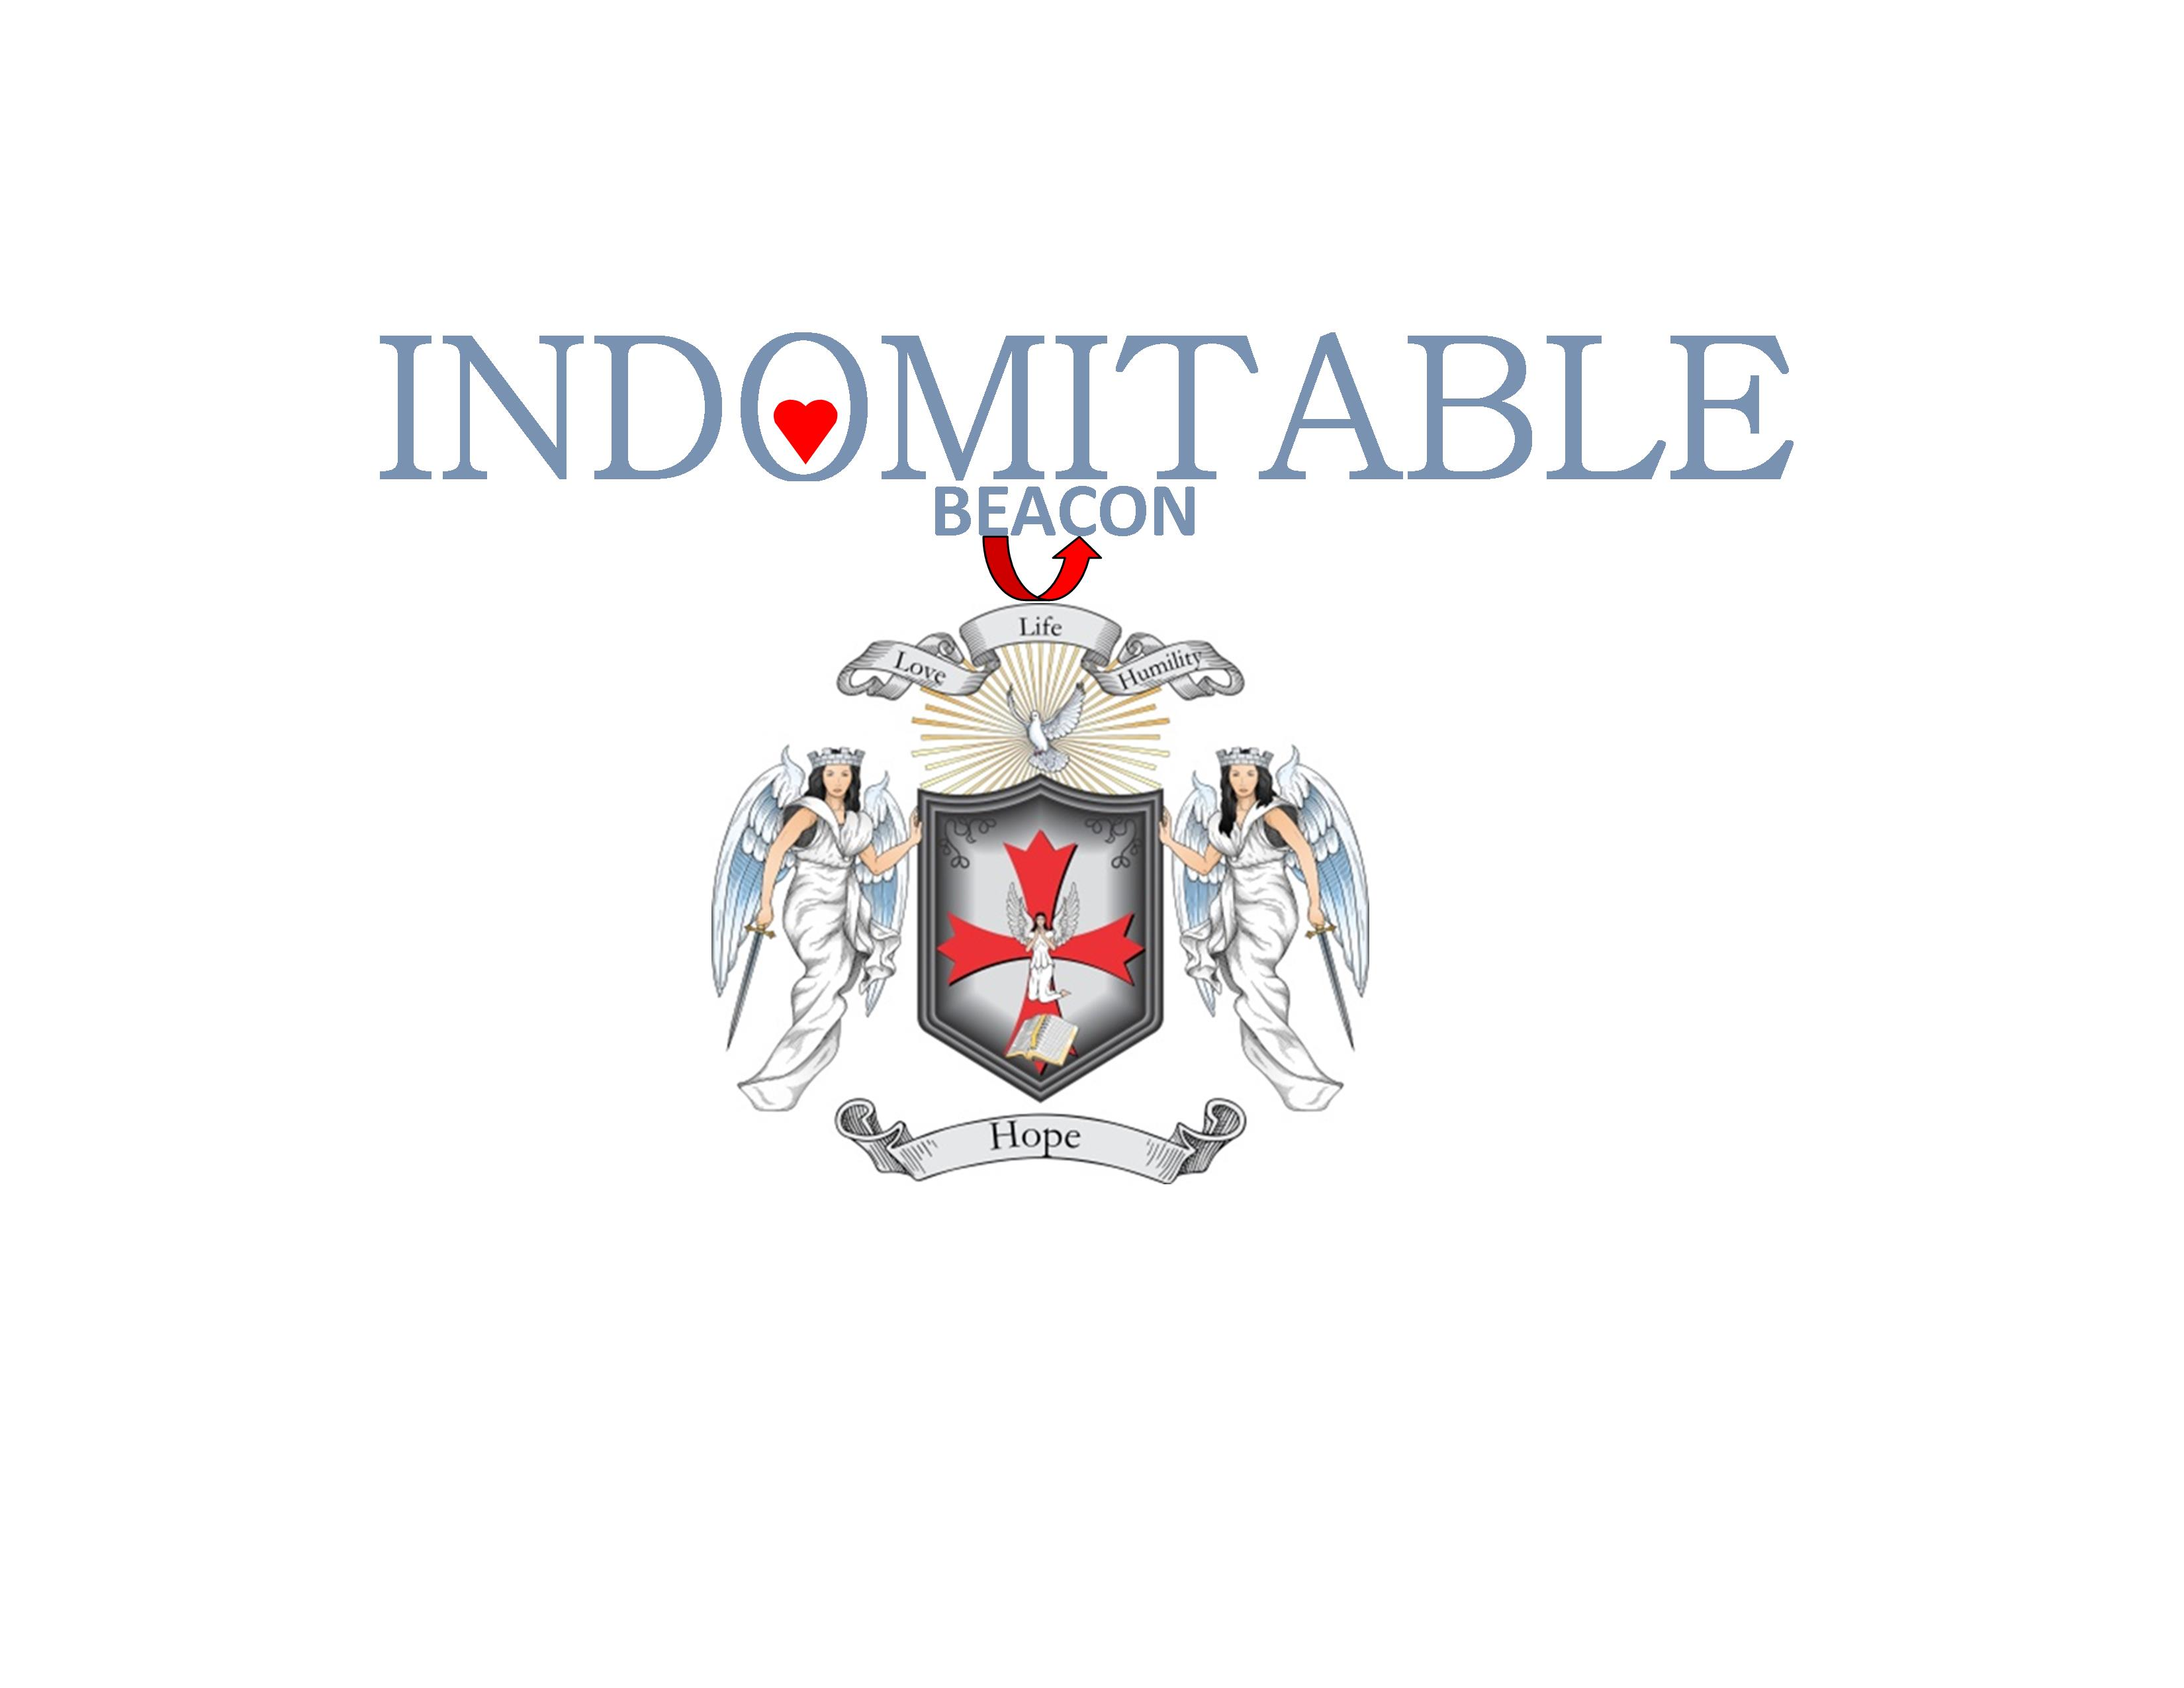 Indomitable Beacon - Coat of Amrs together